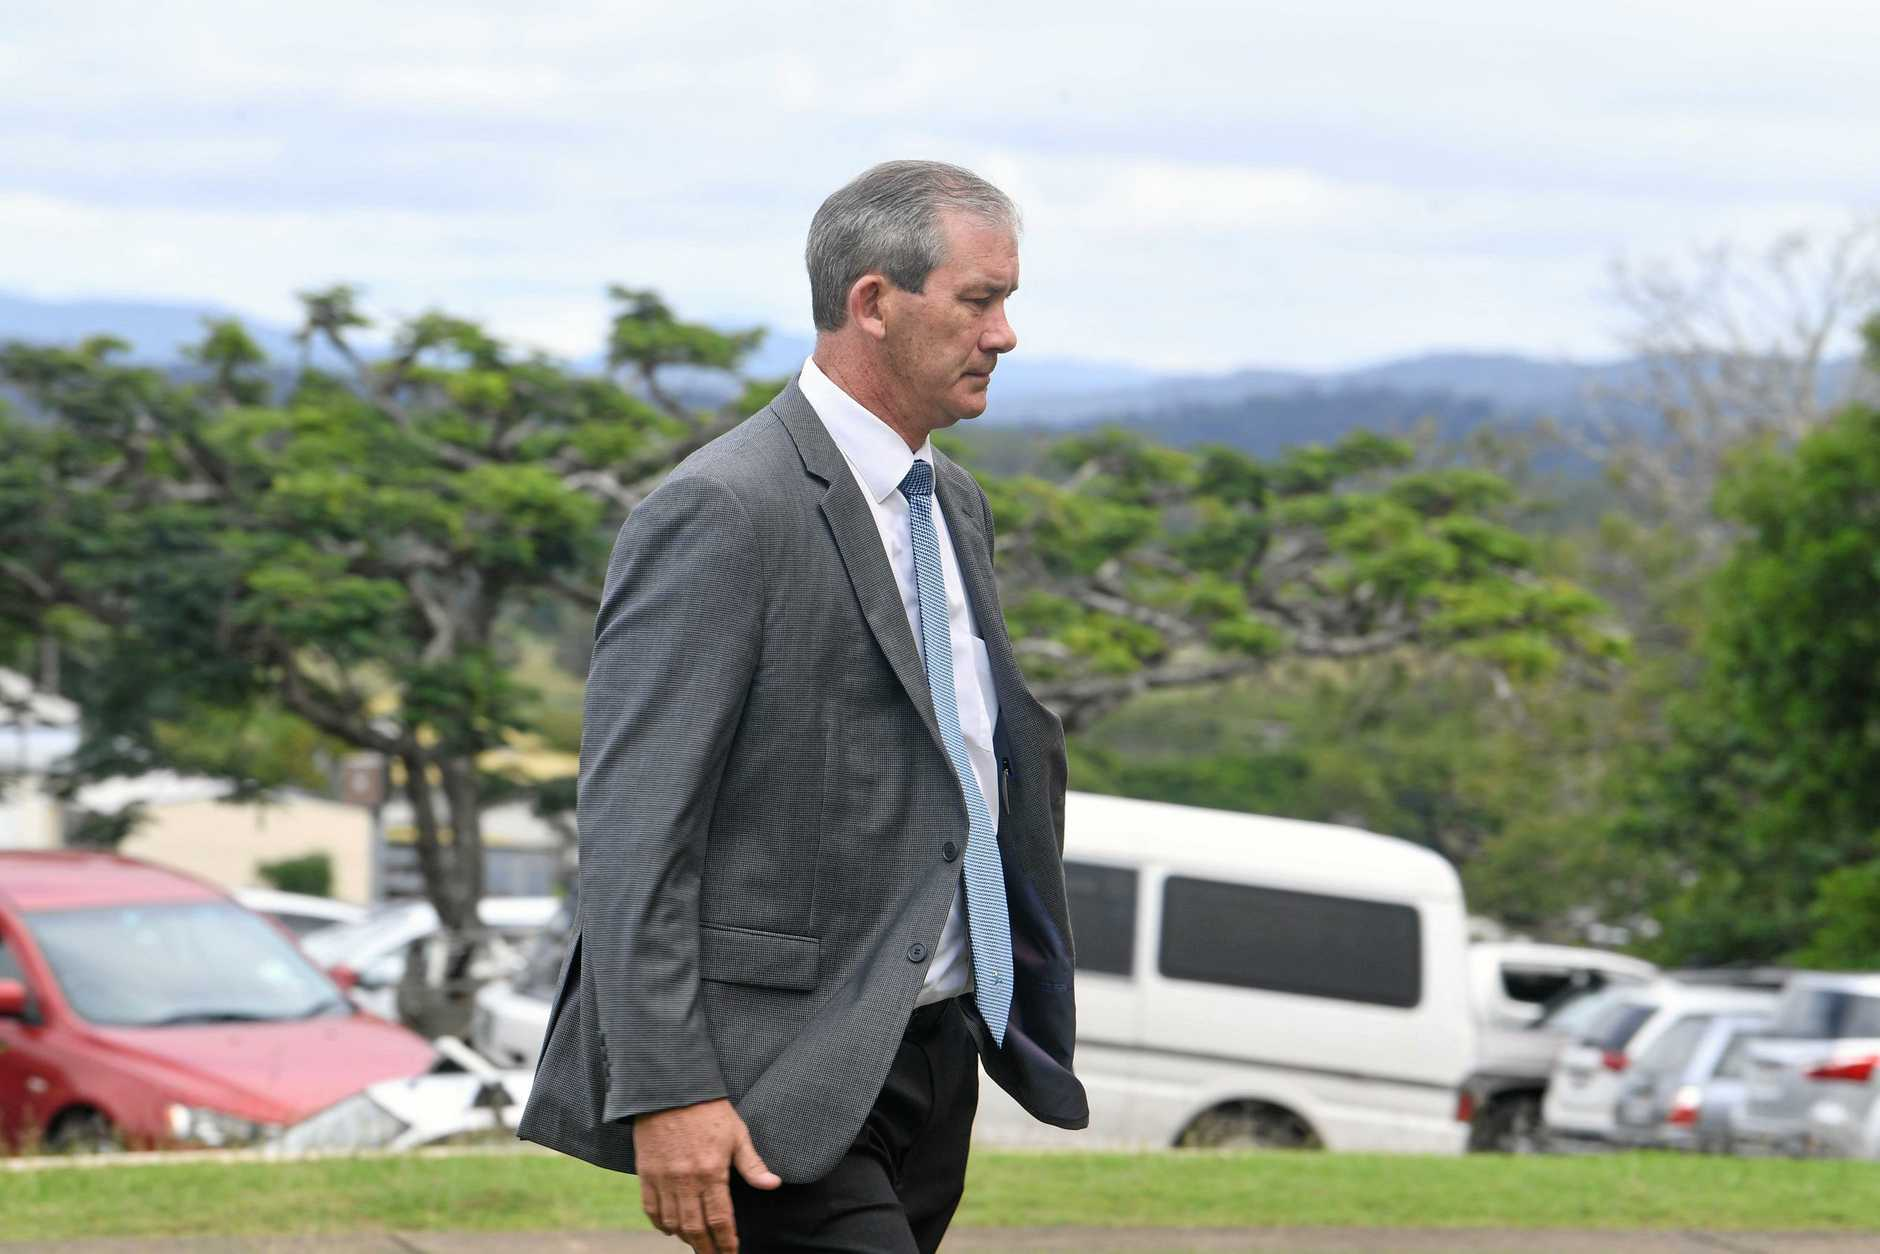 Gympie Mayor Mick Curran walks into Gympie District Court House